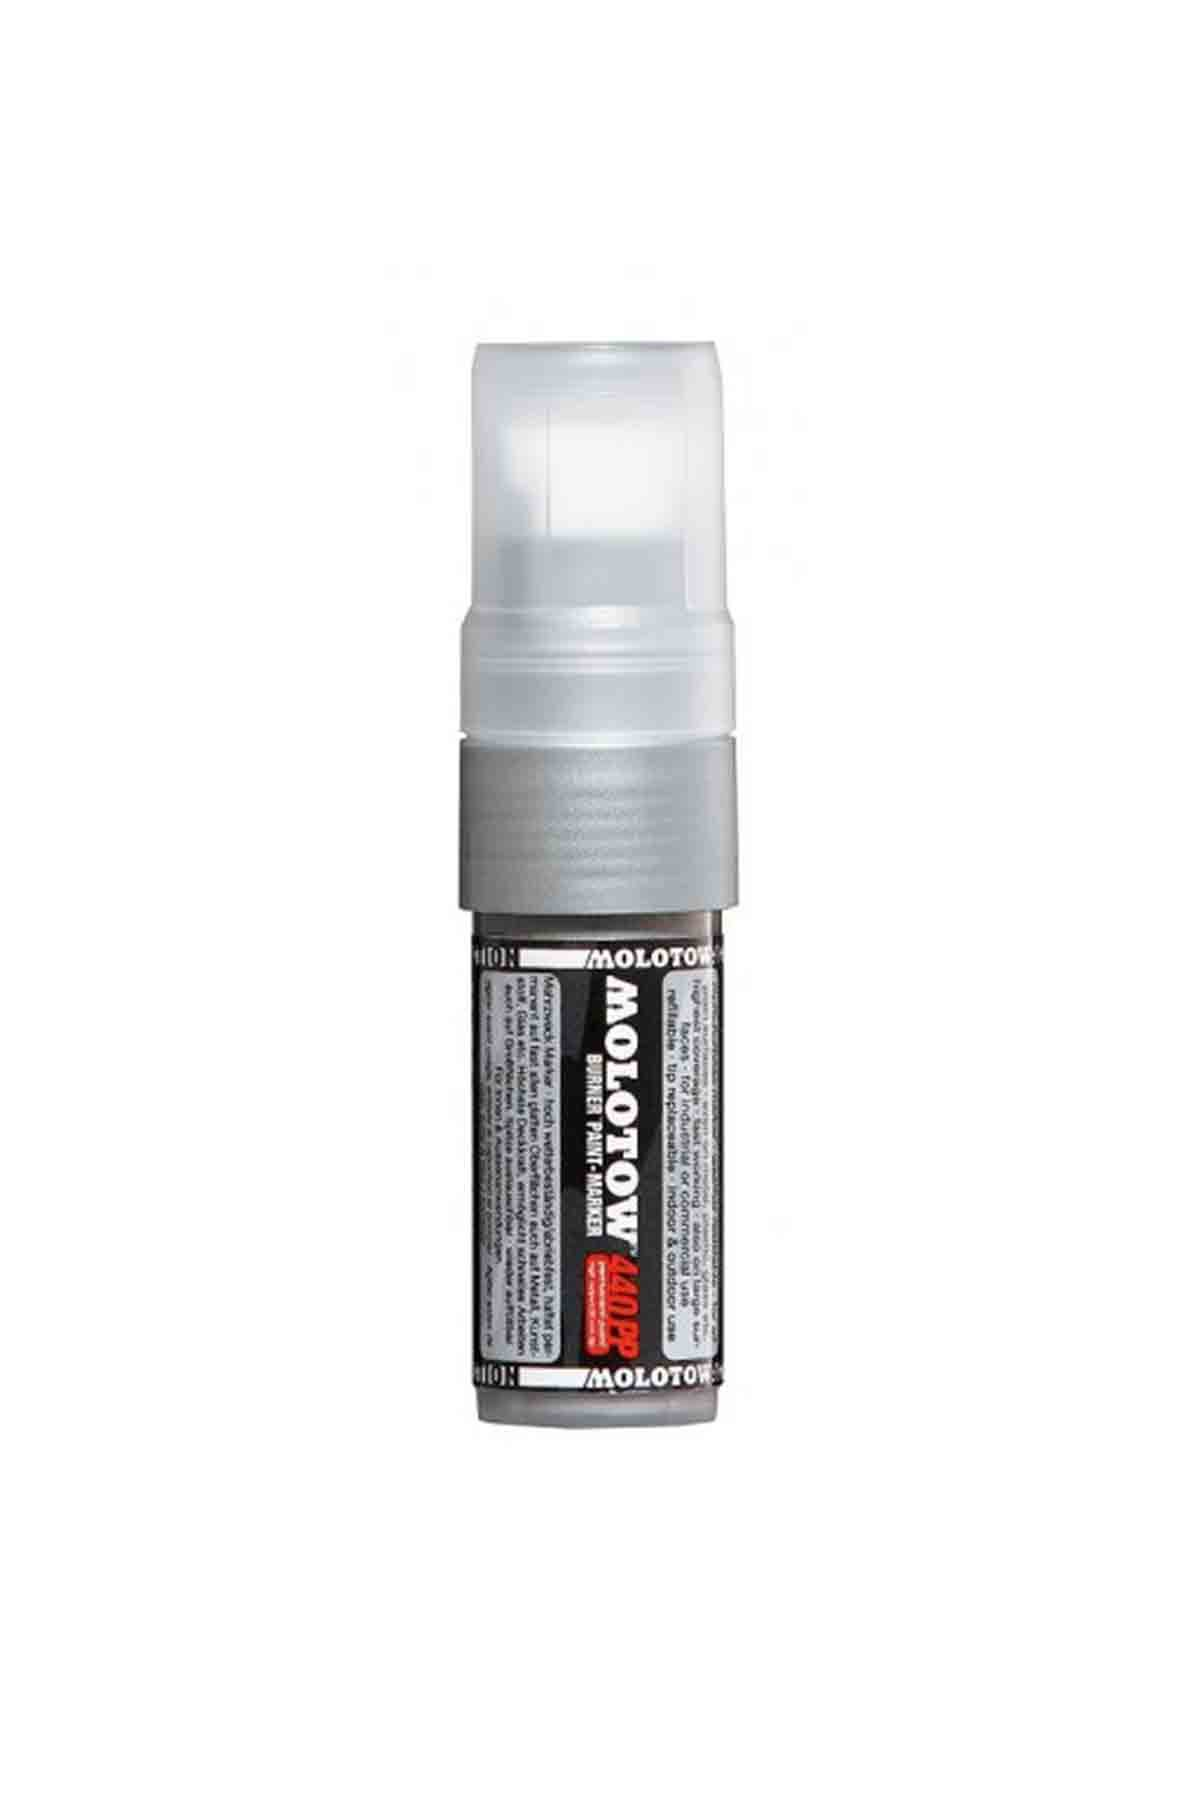 Molotow 440 PP BURNER Marker 20mm